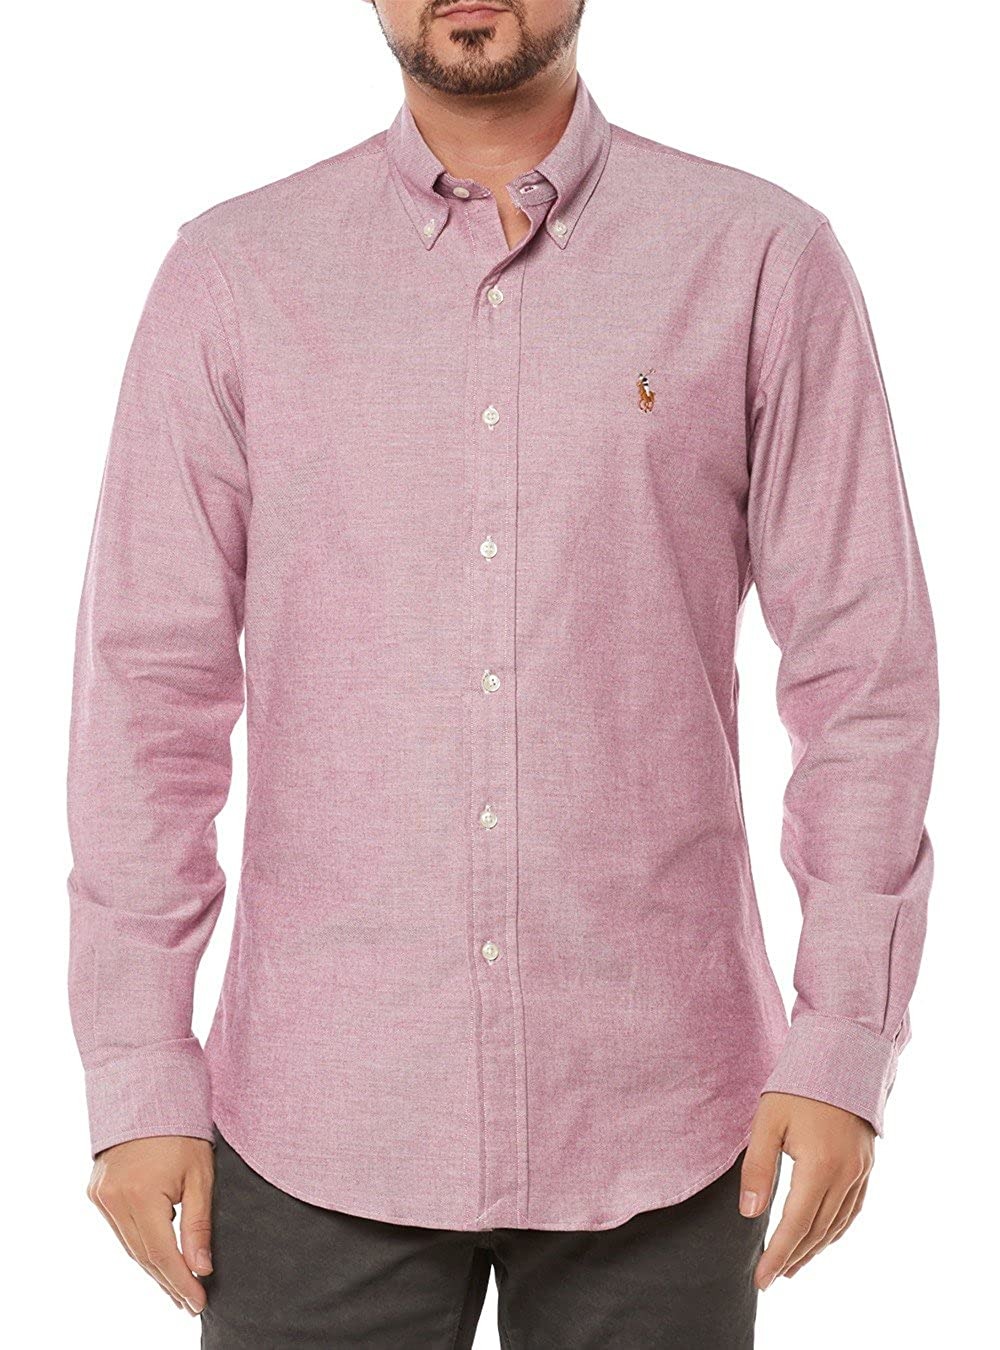 Ralph Lauren Hombre Camisa Slim Fit A04 W37cd b44 a1 Color Rosa ...